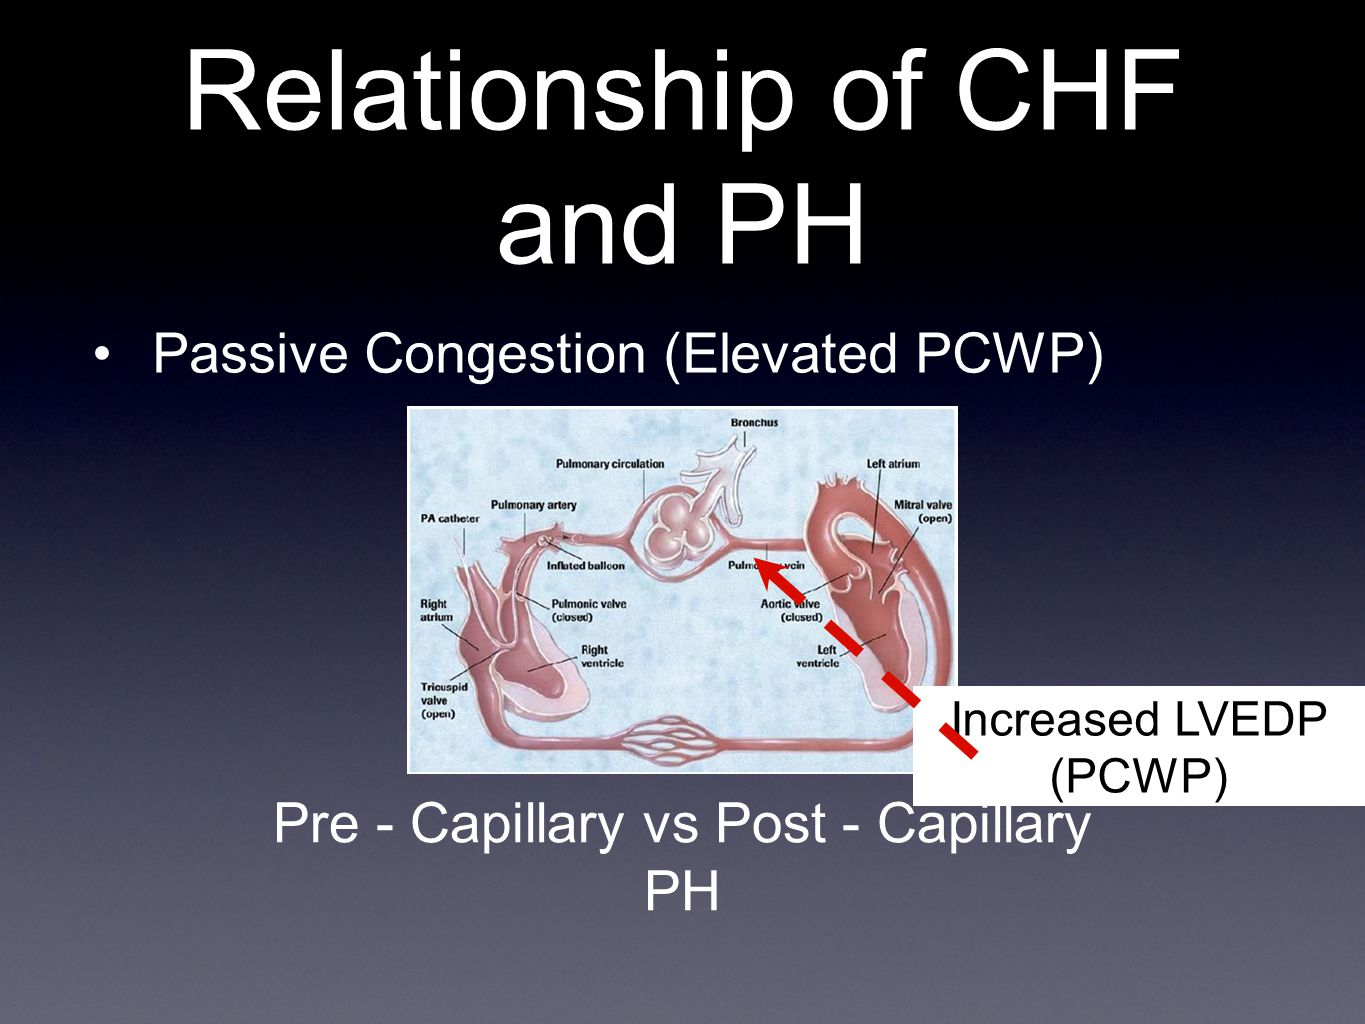 pap and pcwp relationship